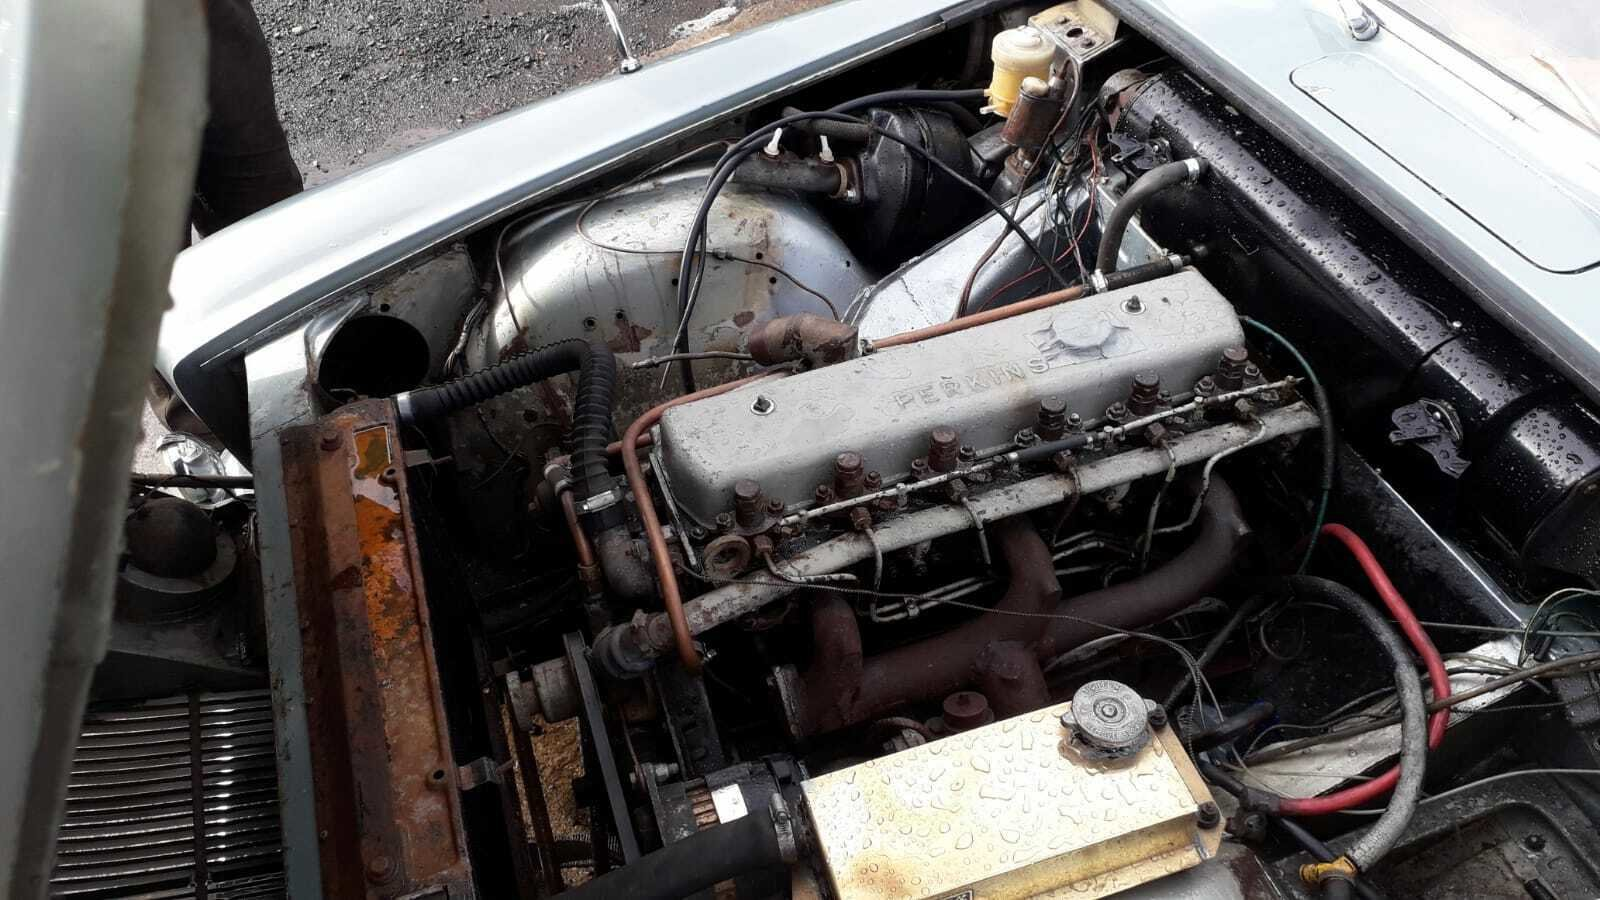 1968 JAGUAR 420 G MK10 TAX & MOT EXEMPT WORTHWHILE PROJECT  SOLD (picture 6 of 6)